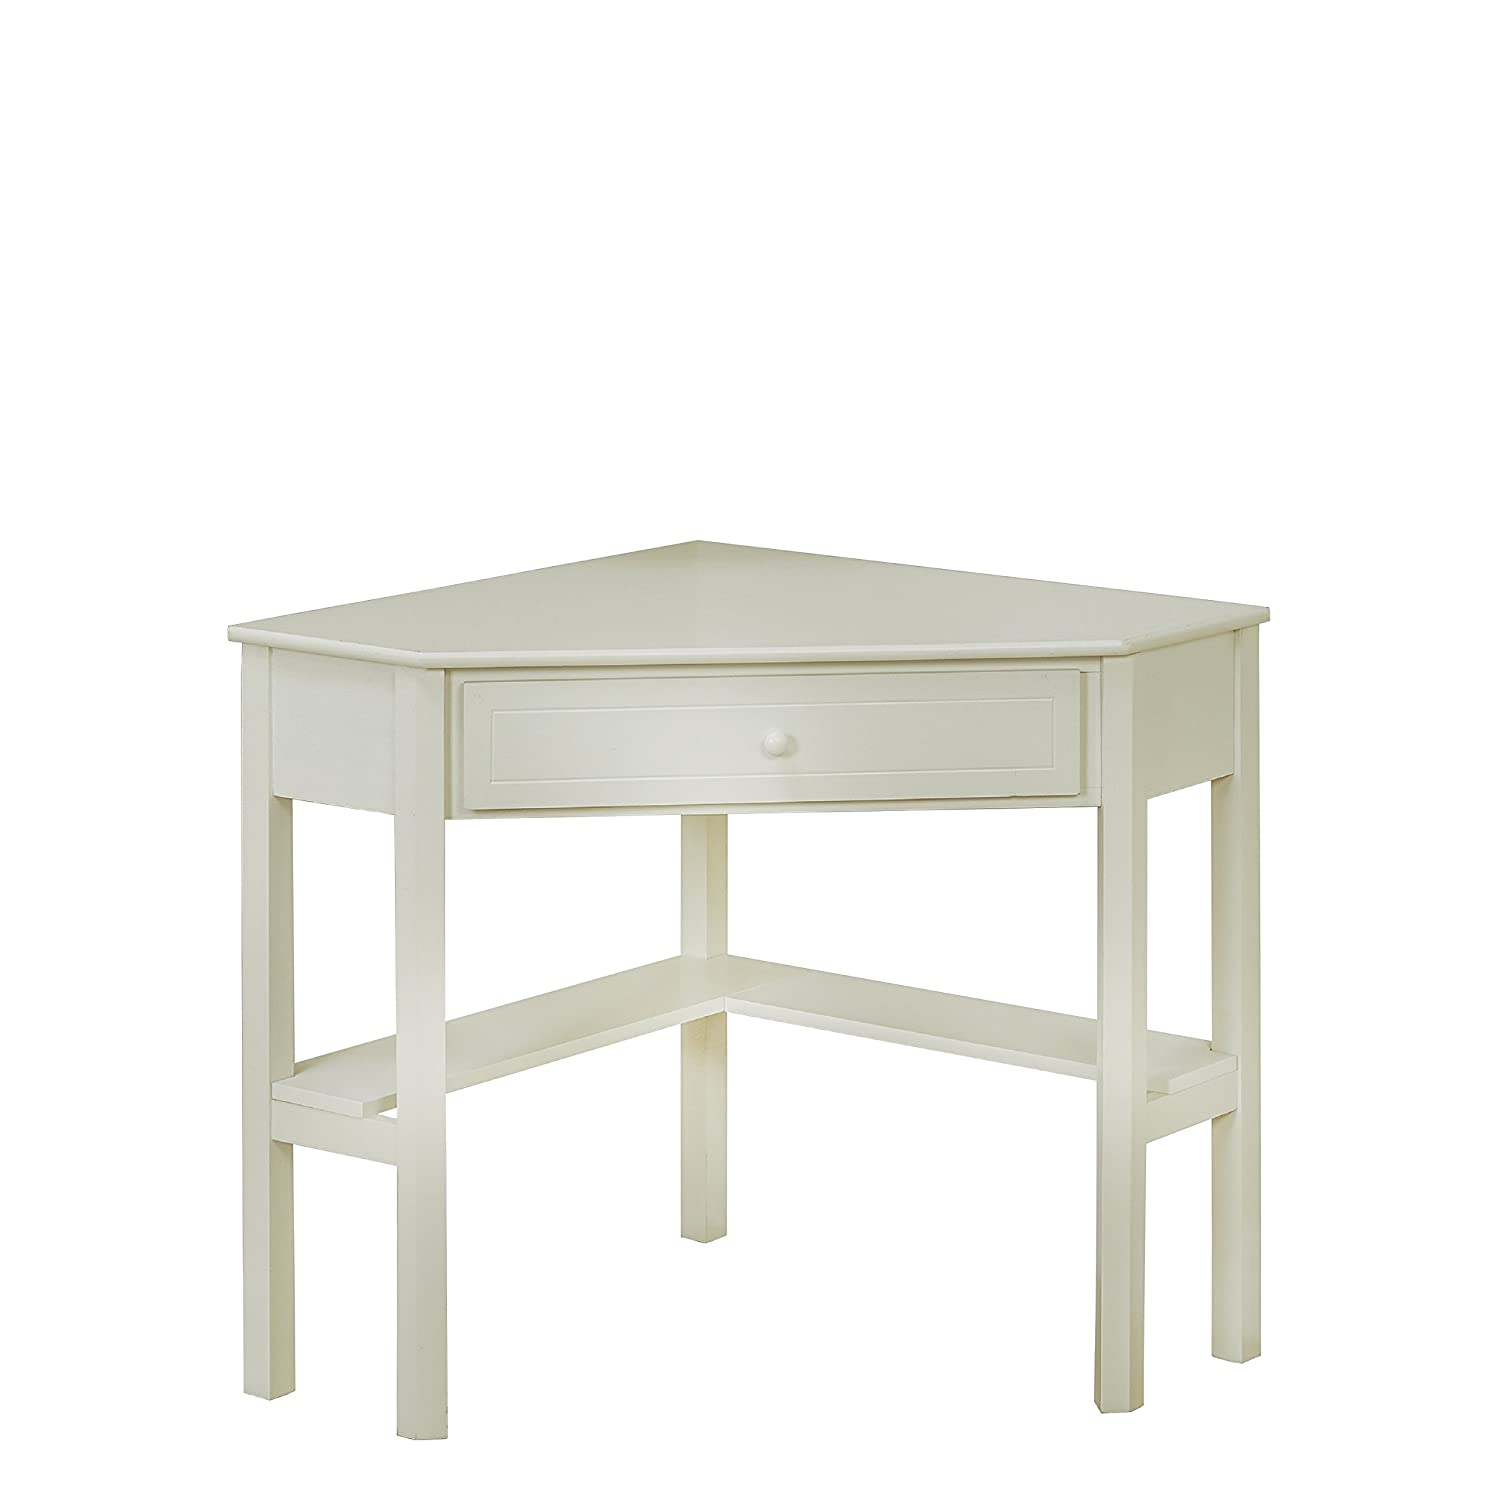 Target Marketing Systems Wood Corner Desk with One Drawer and One Storage Shelf, Antique White Finish